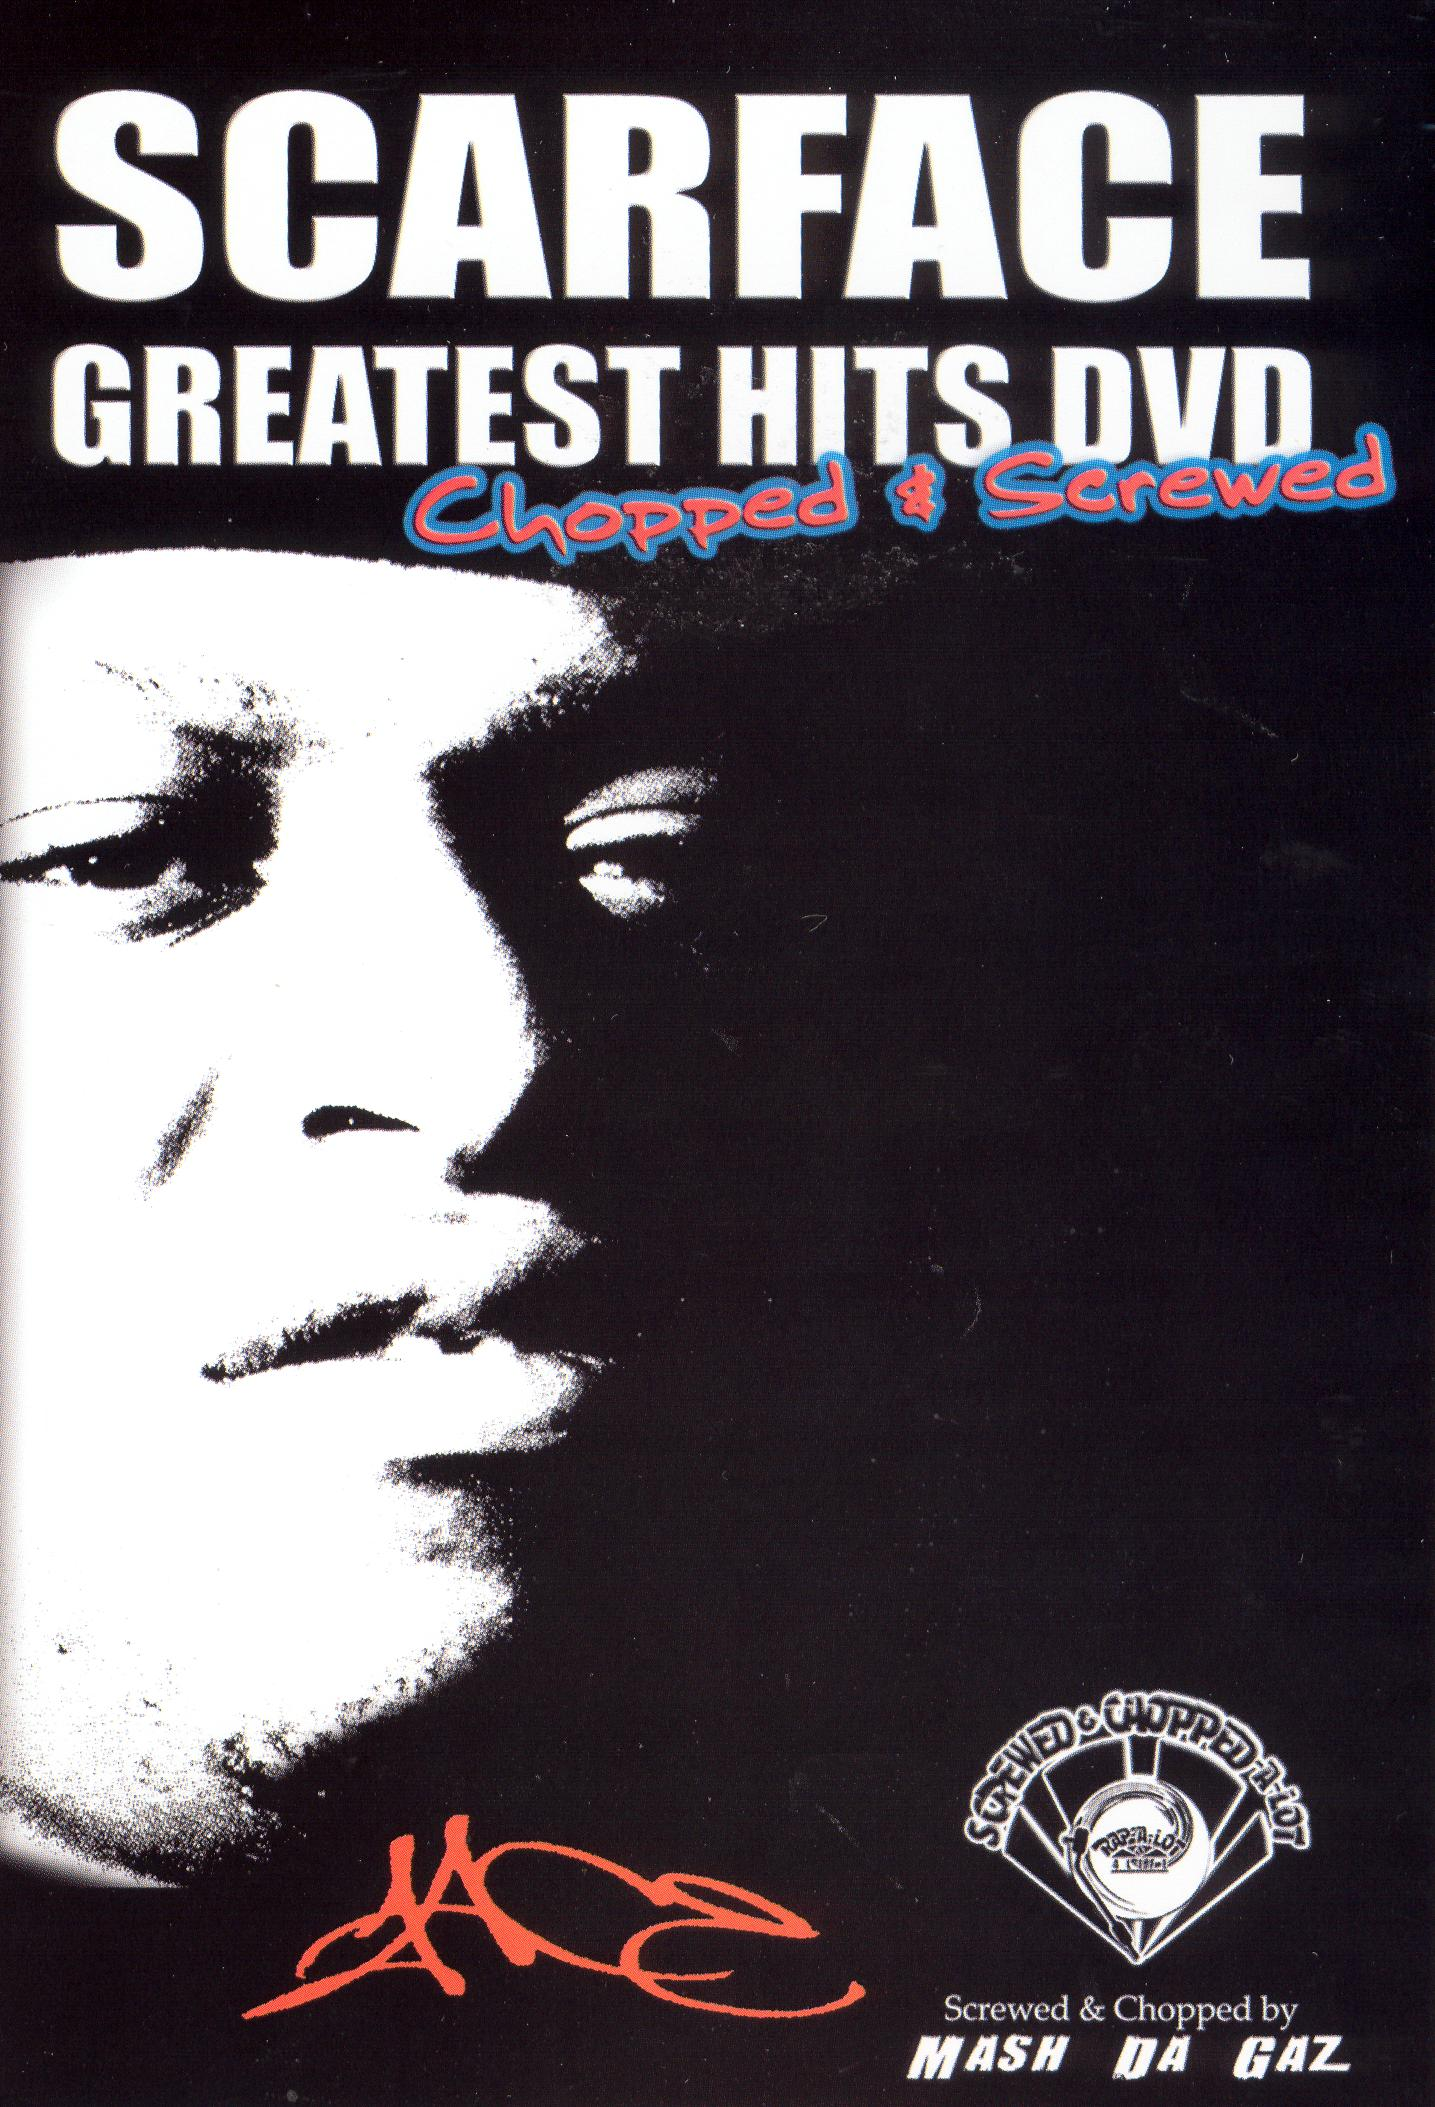 Scarface: Greatest Hits DVD [Chopped & Screwed]